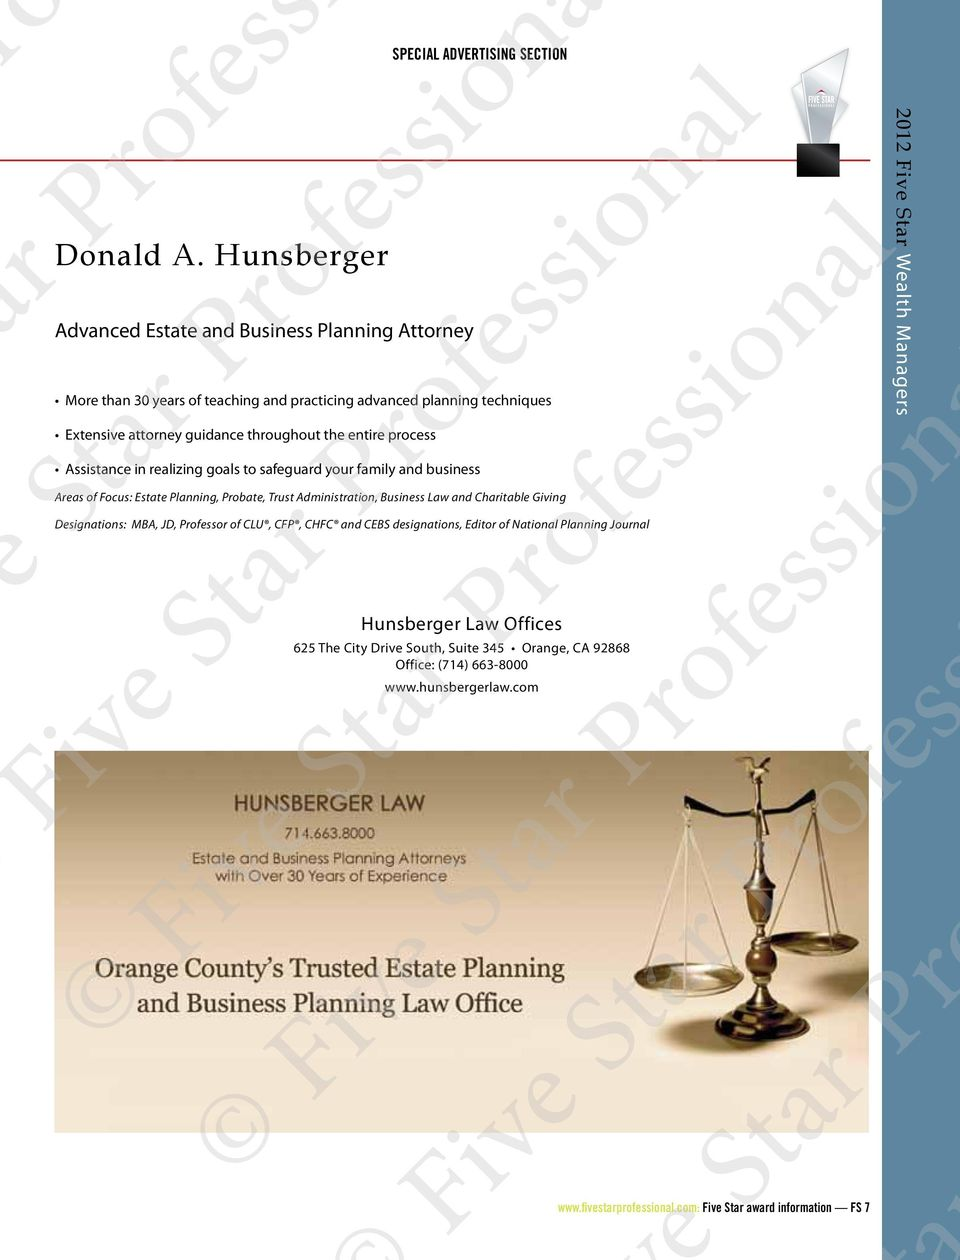 the entire process Assistance in realizing goals to safeguard your family and business Areas of Focus: Estate Planning, Probate, Trust Administration, Business Law and